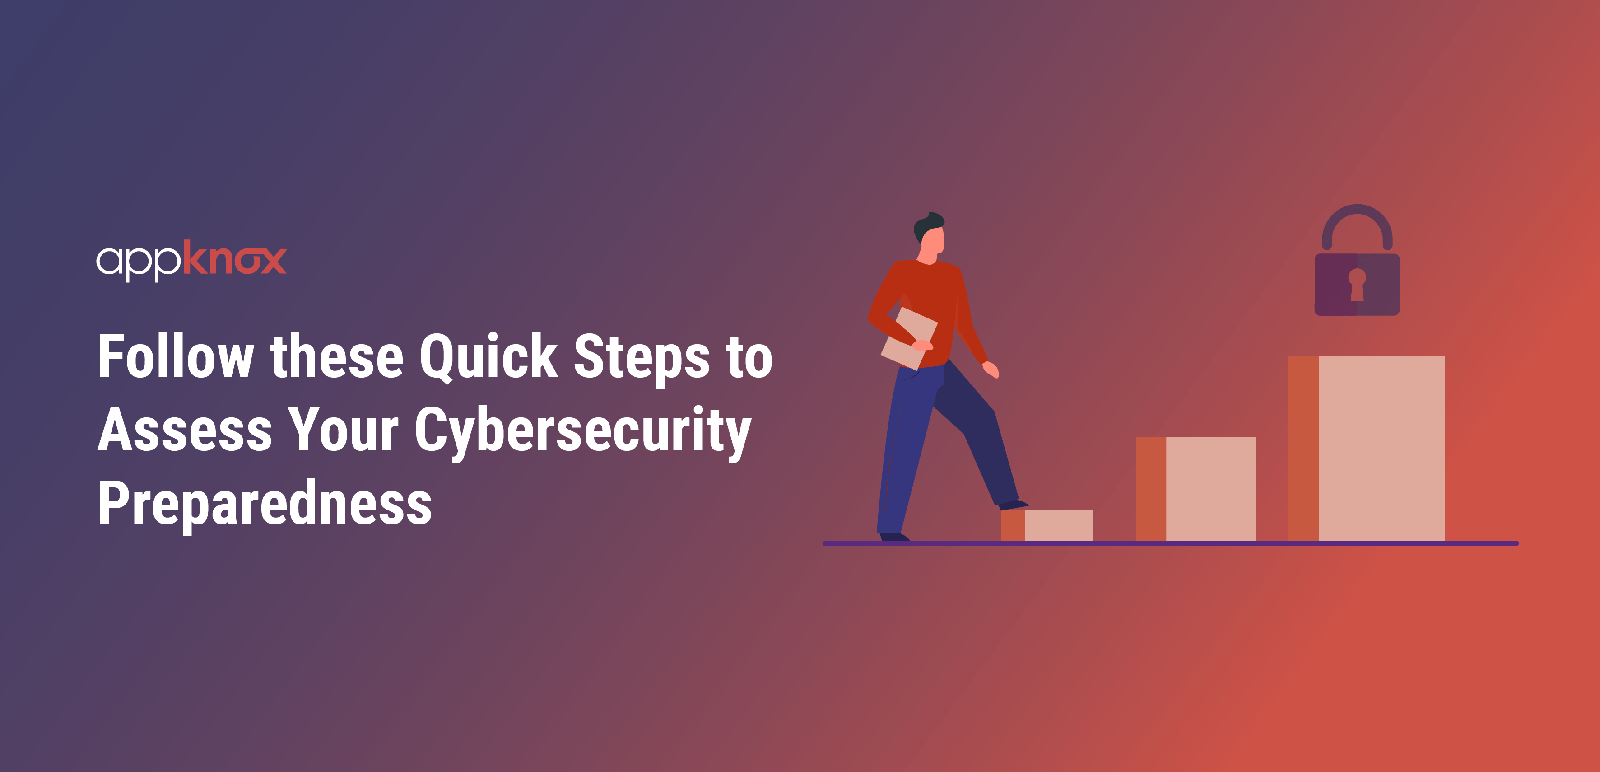 Follow these Quick Steps to Assess Your Cybersecurity Preparedness